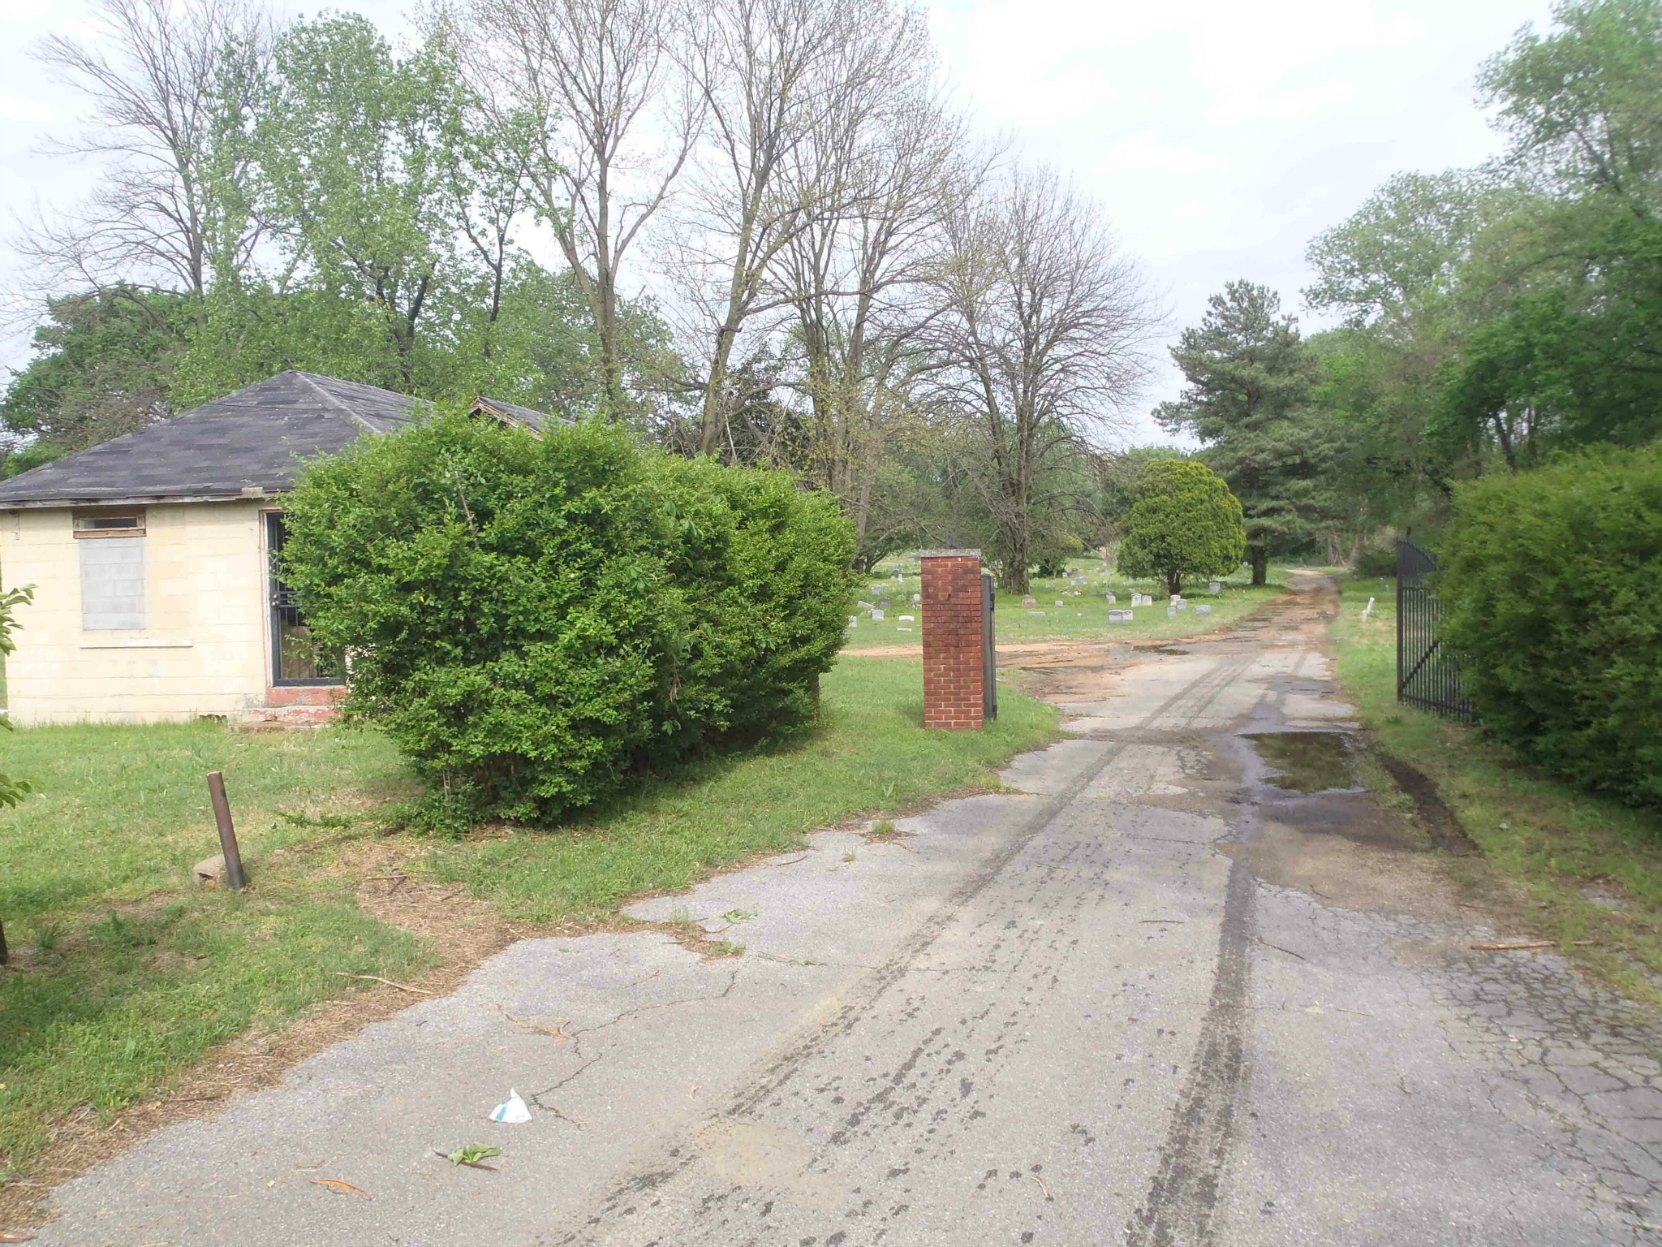 Entrance to Hollywood Cemetery, Memphis, Tennessee